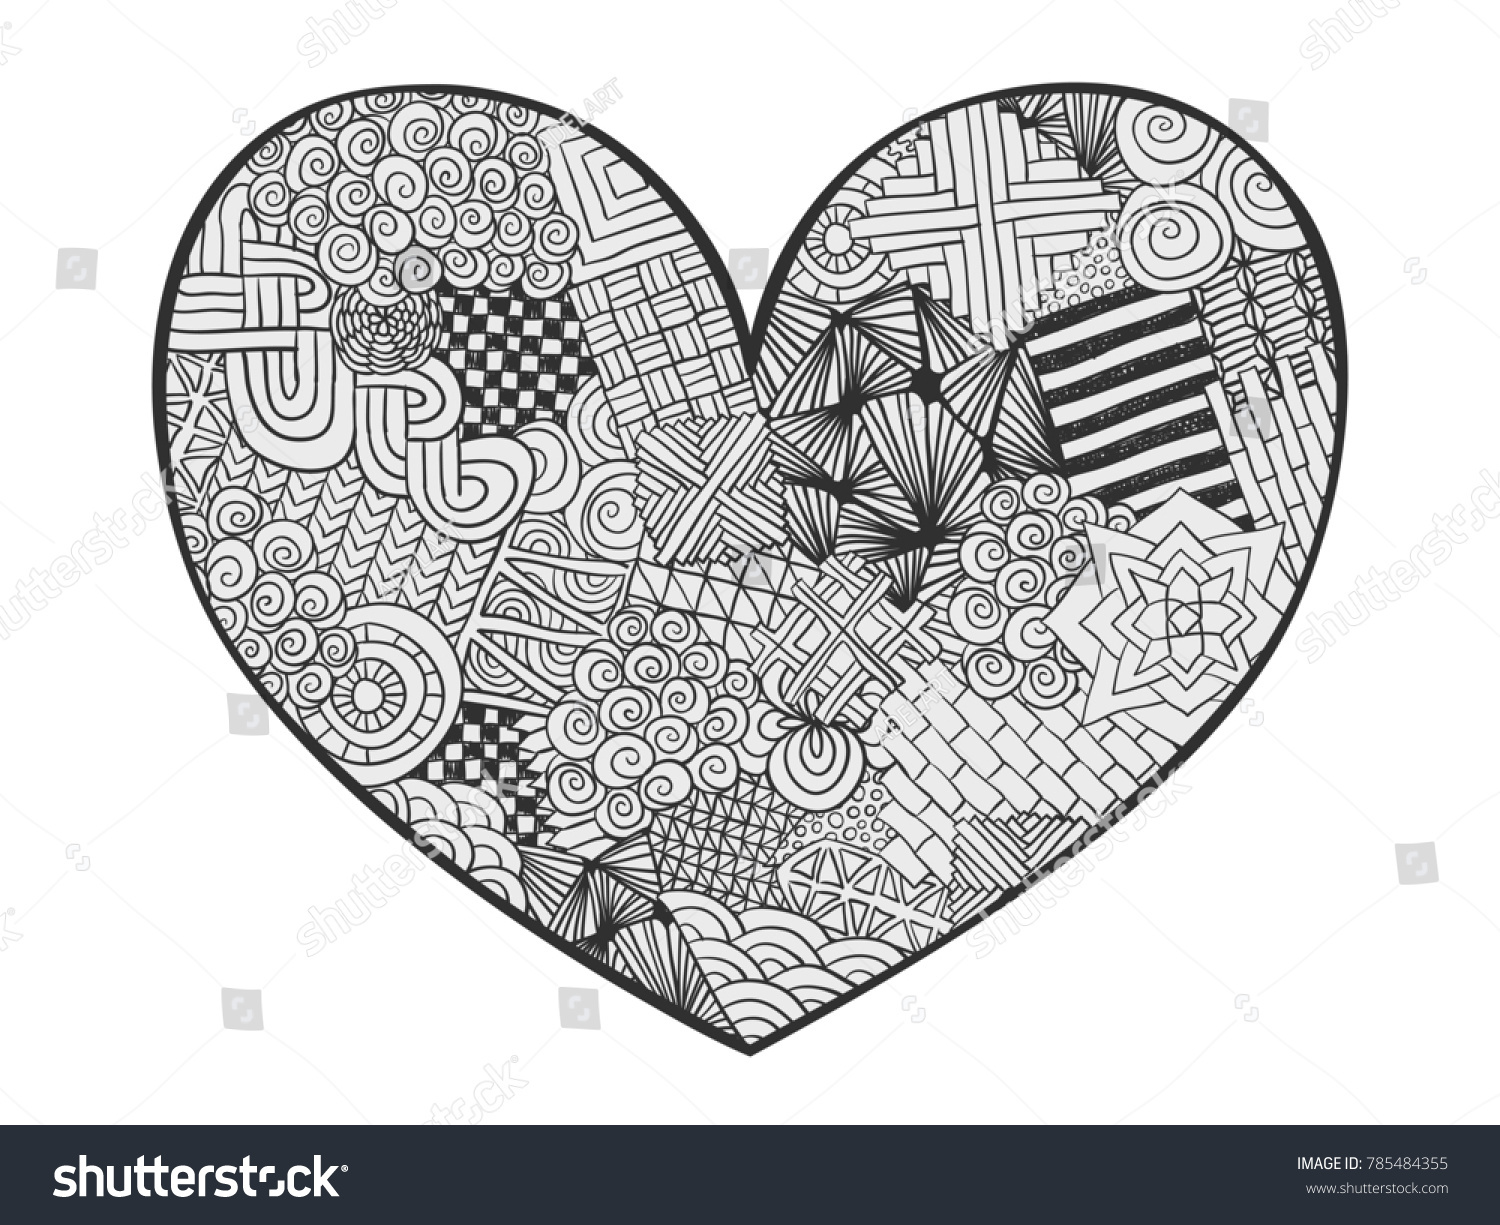 Heart Doodle Coloring Page Zentangle Abstract Stock Illustration ...